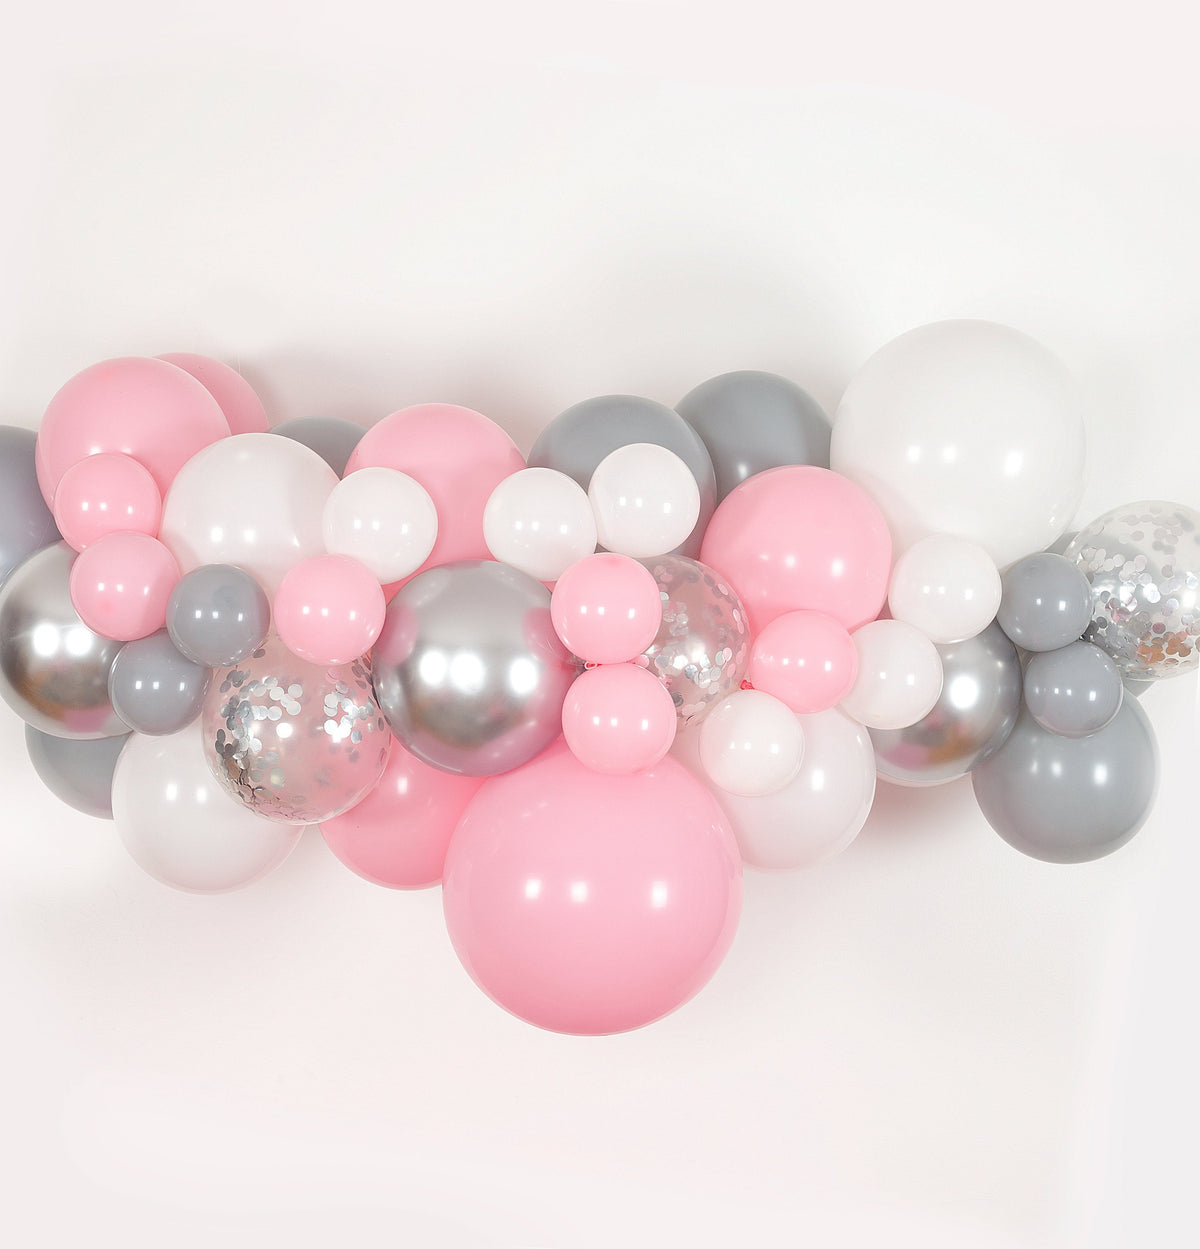 Bubblegum Pink White Gray And Silver Balloon Arch And Garland Kit 5 Shimmer Confetti